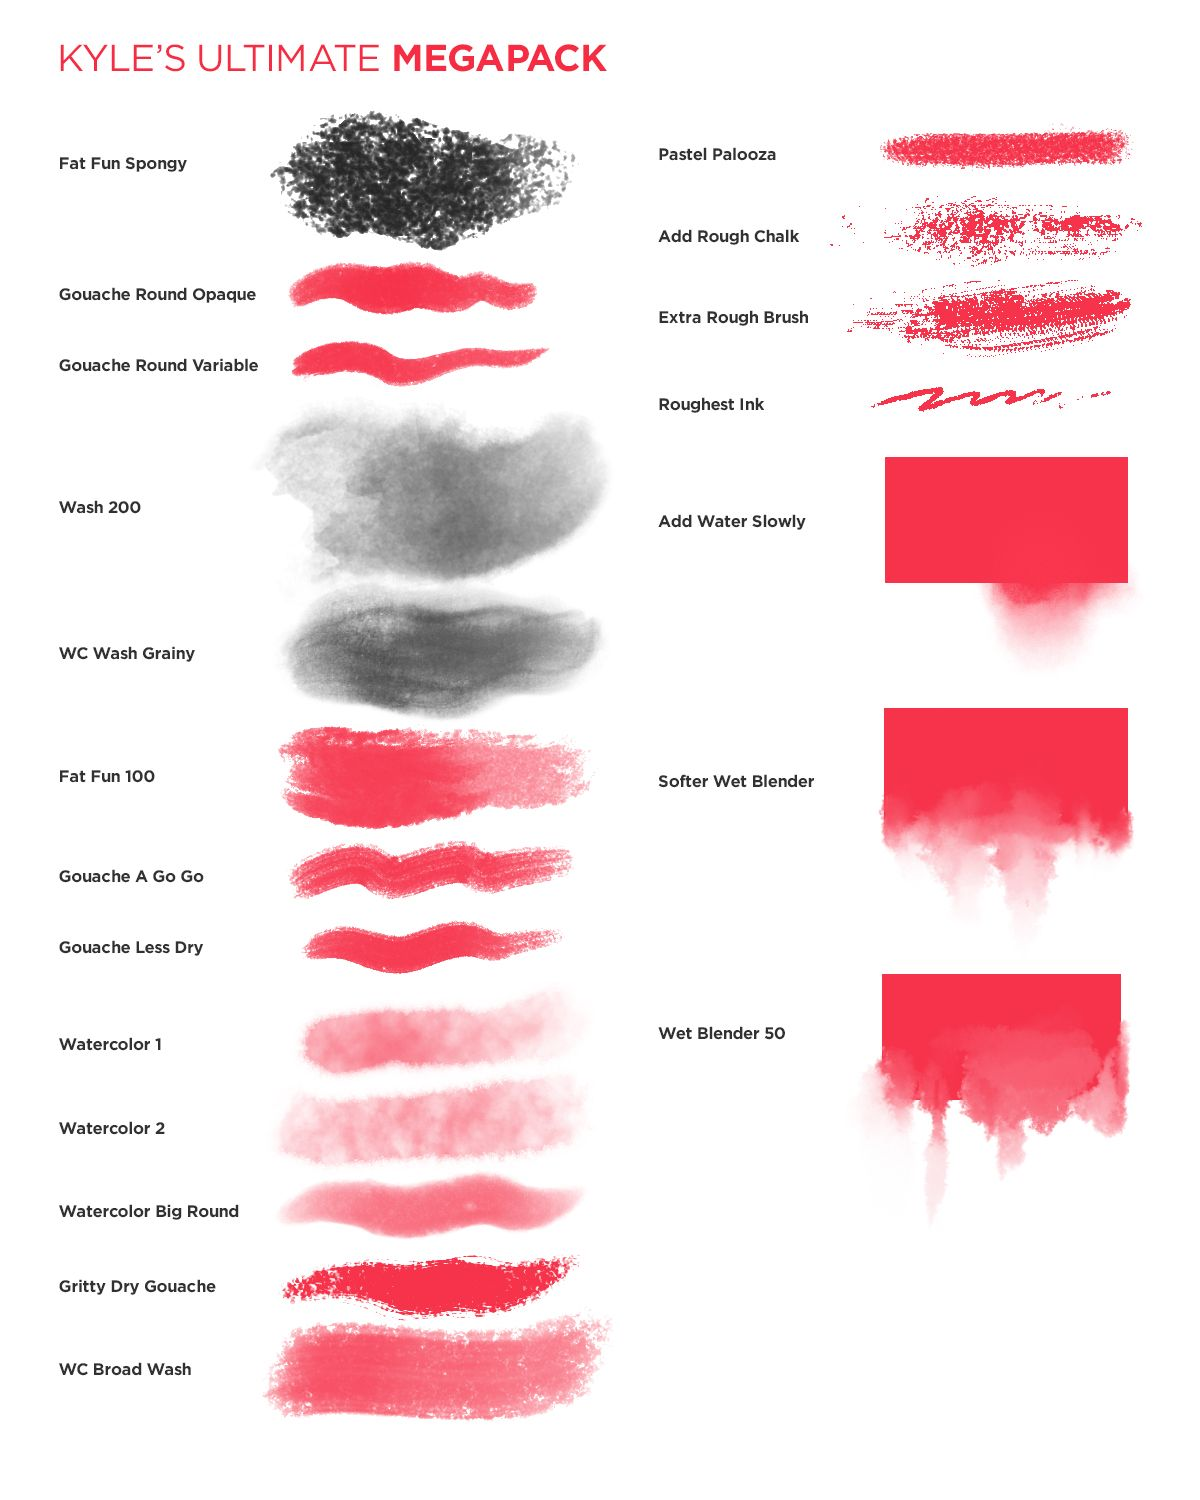 Kyletwebster The First Comprehensive Cheat Sheet For My